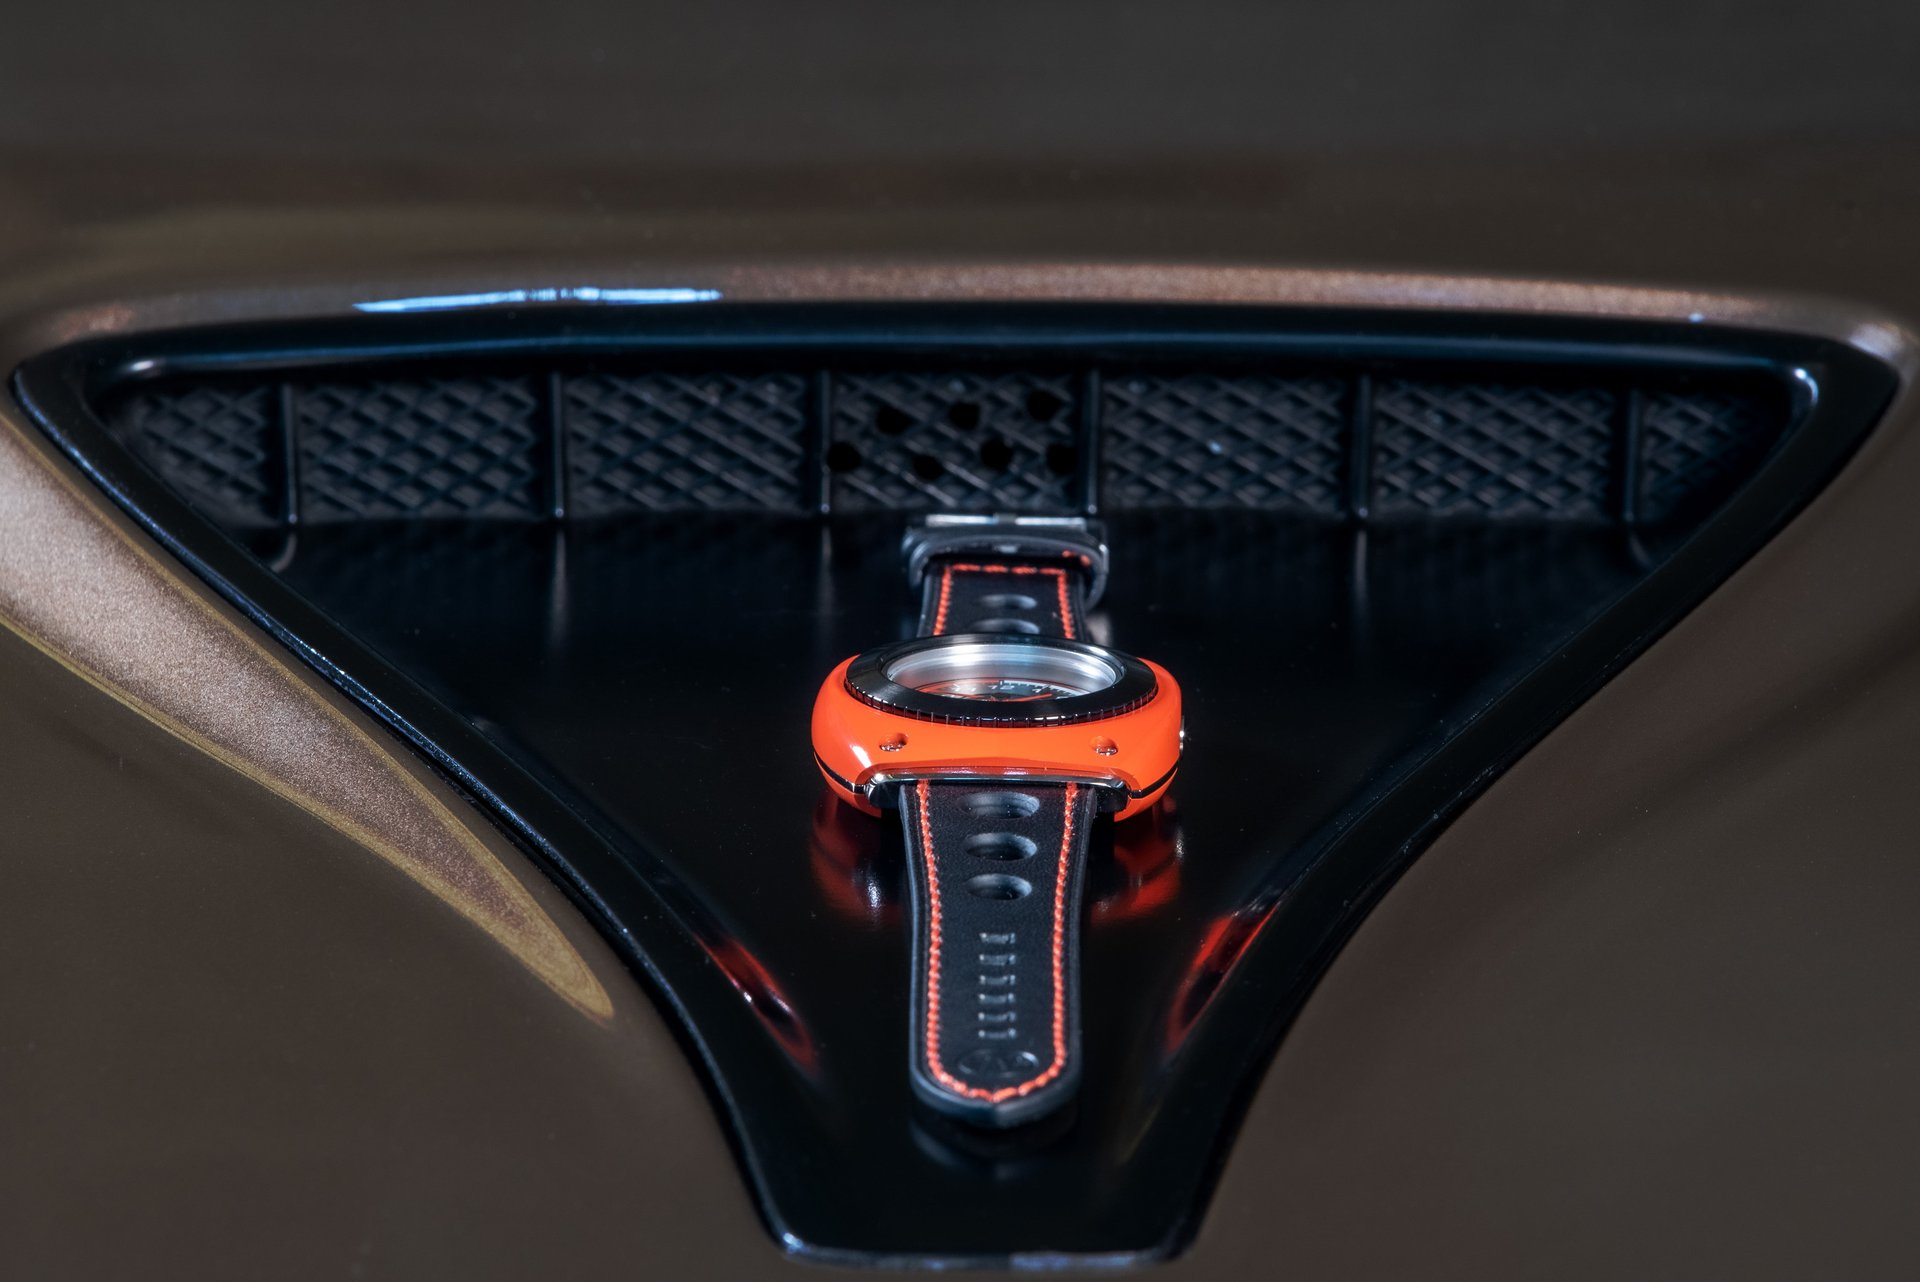 Blasta Watch Scuderia Veloce, rosso scuderia. Photo taken on the hood of a Alfa Romeo Montreal. ©2019 Blasta Watch Ltd. All Rights reserved.